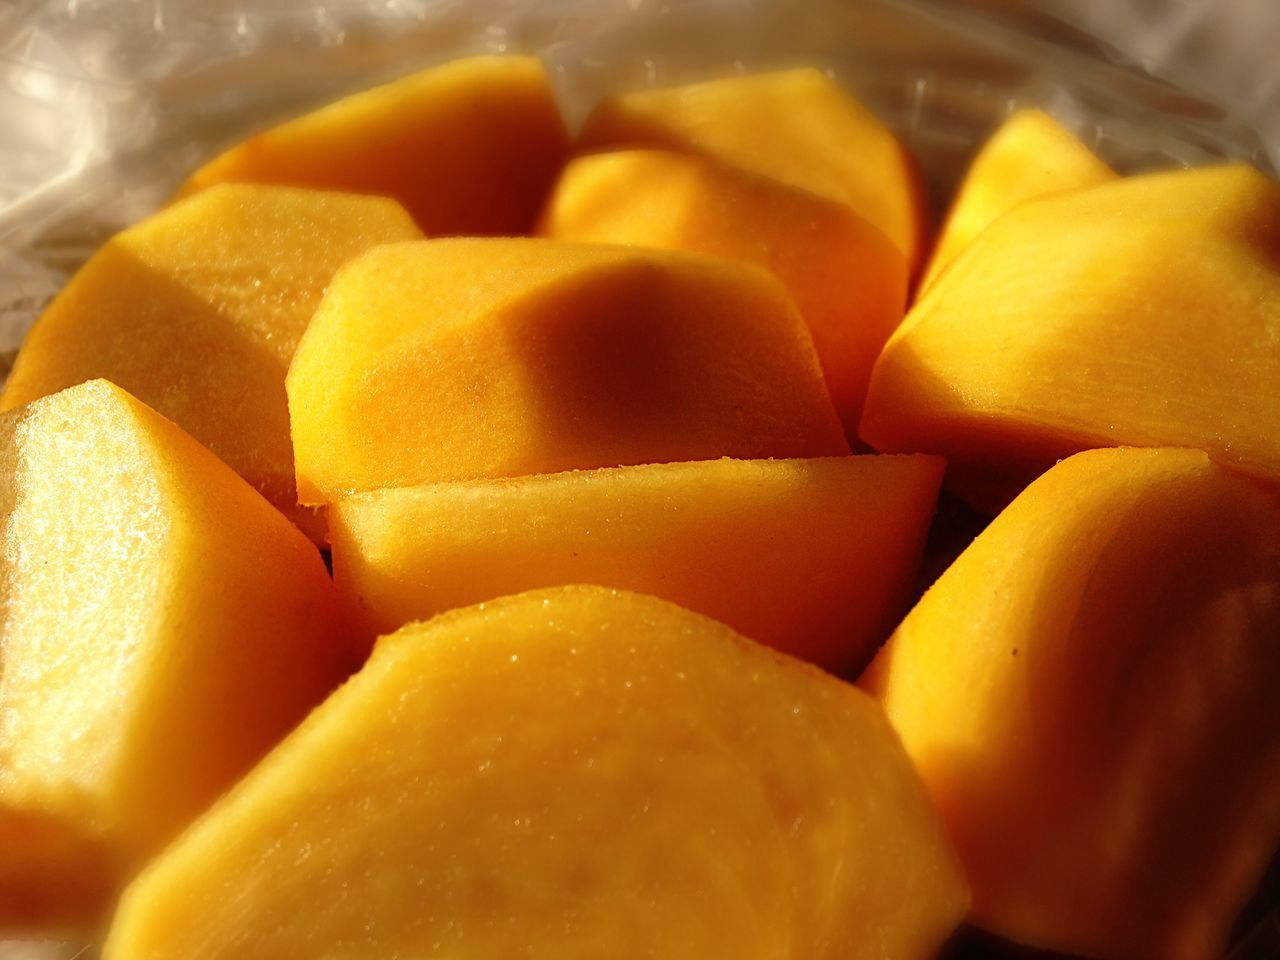 food, food and drink, fruit, healthy eating, freshness, yellow, no people, slice, mango, indoors, close-up, sweet food, ready-to-eat, day